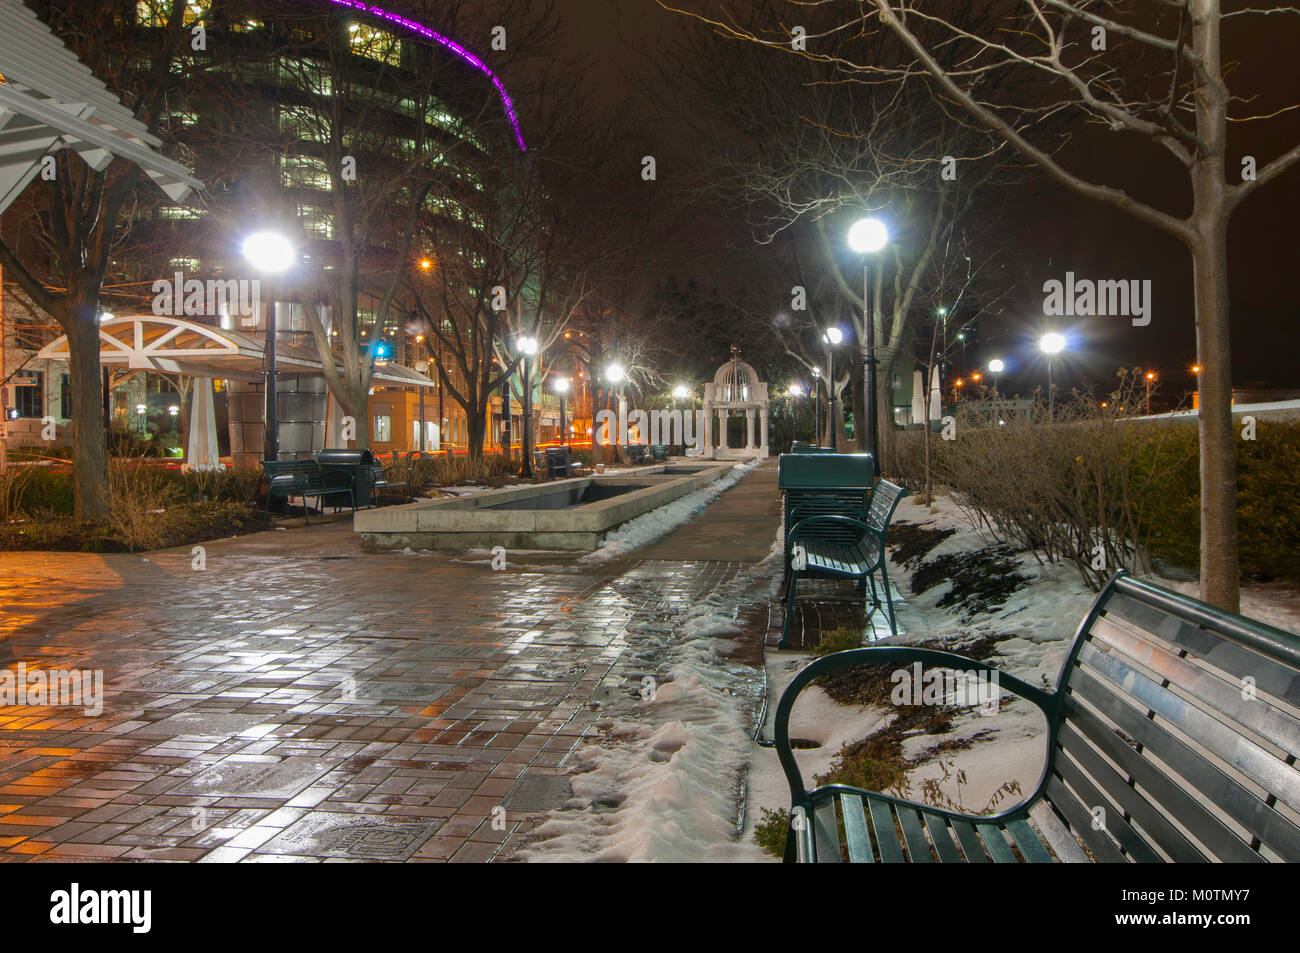 Park bench in the snow in Dayton, Ohio at night with city lights in the background. - Stock Image